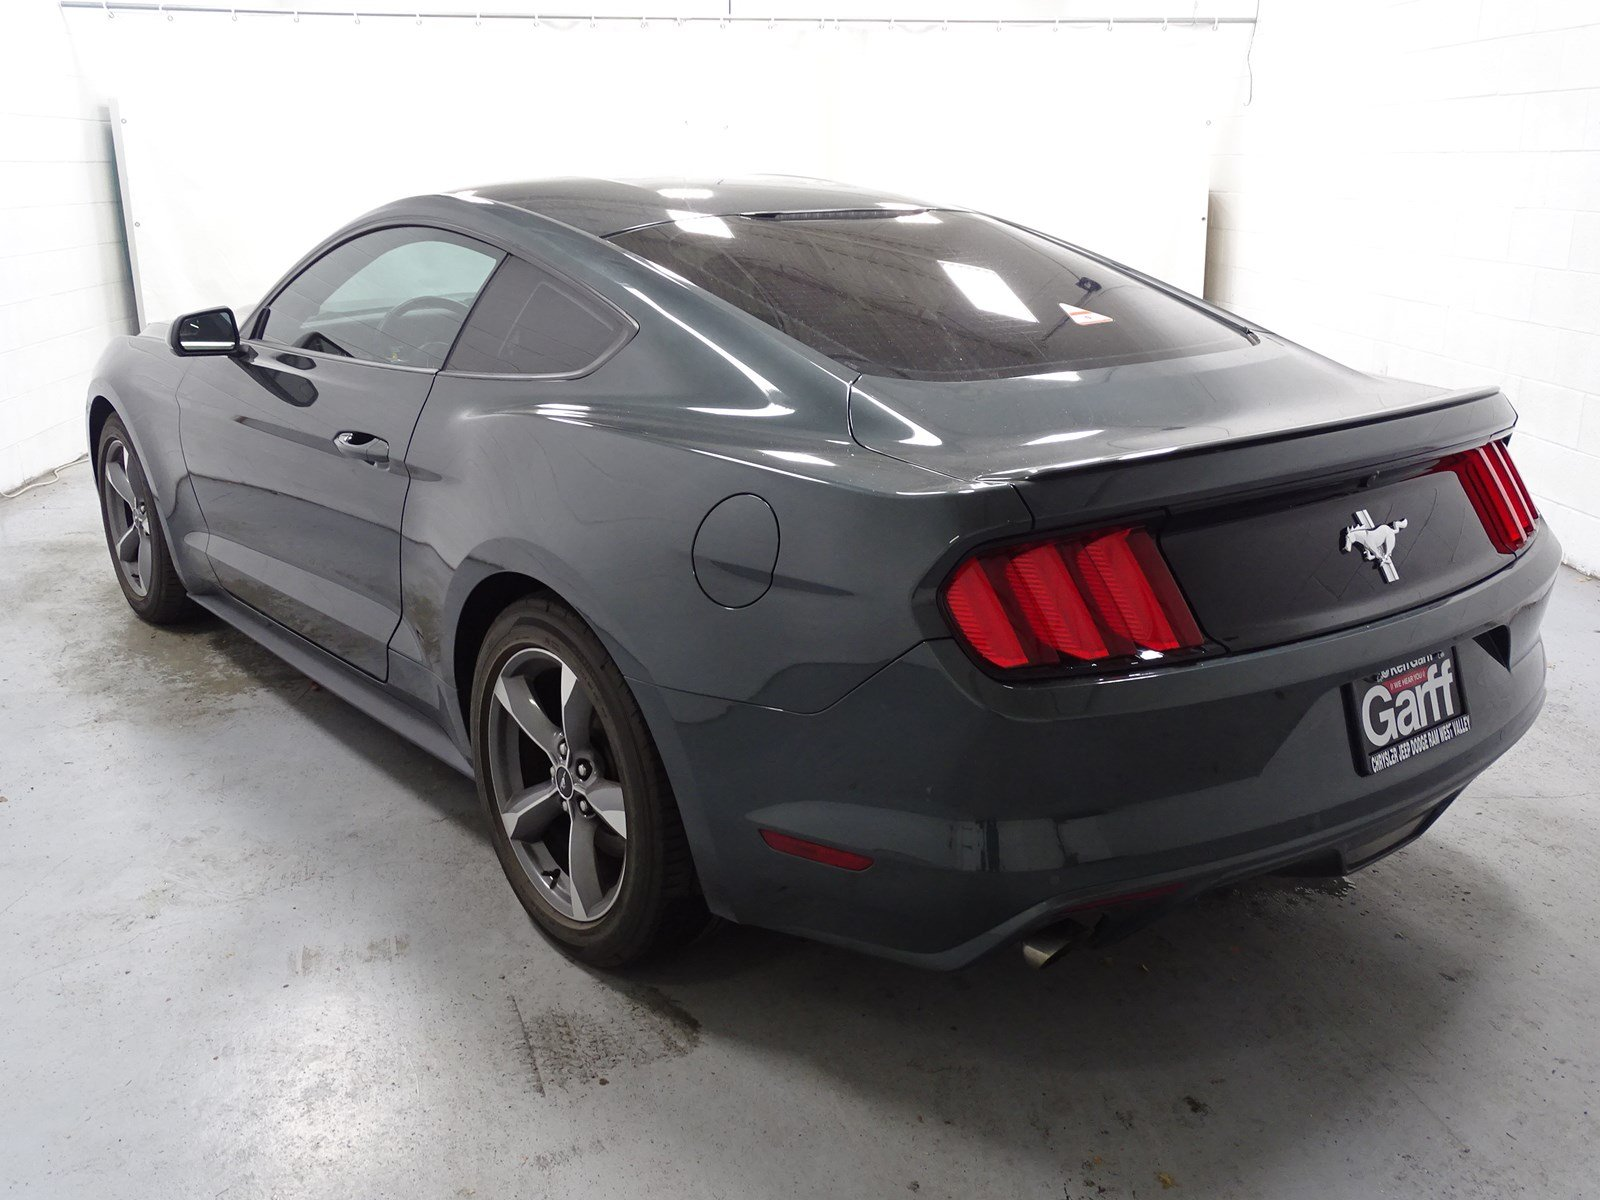 Pre Owned 2016 Ford Mustang V6 2dr Car in WEST VALLEY CITY 1DW8319